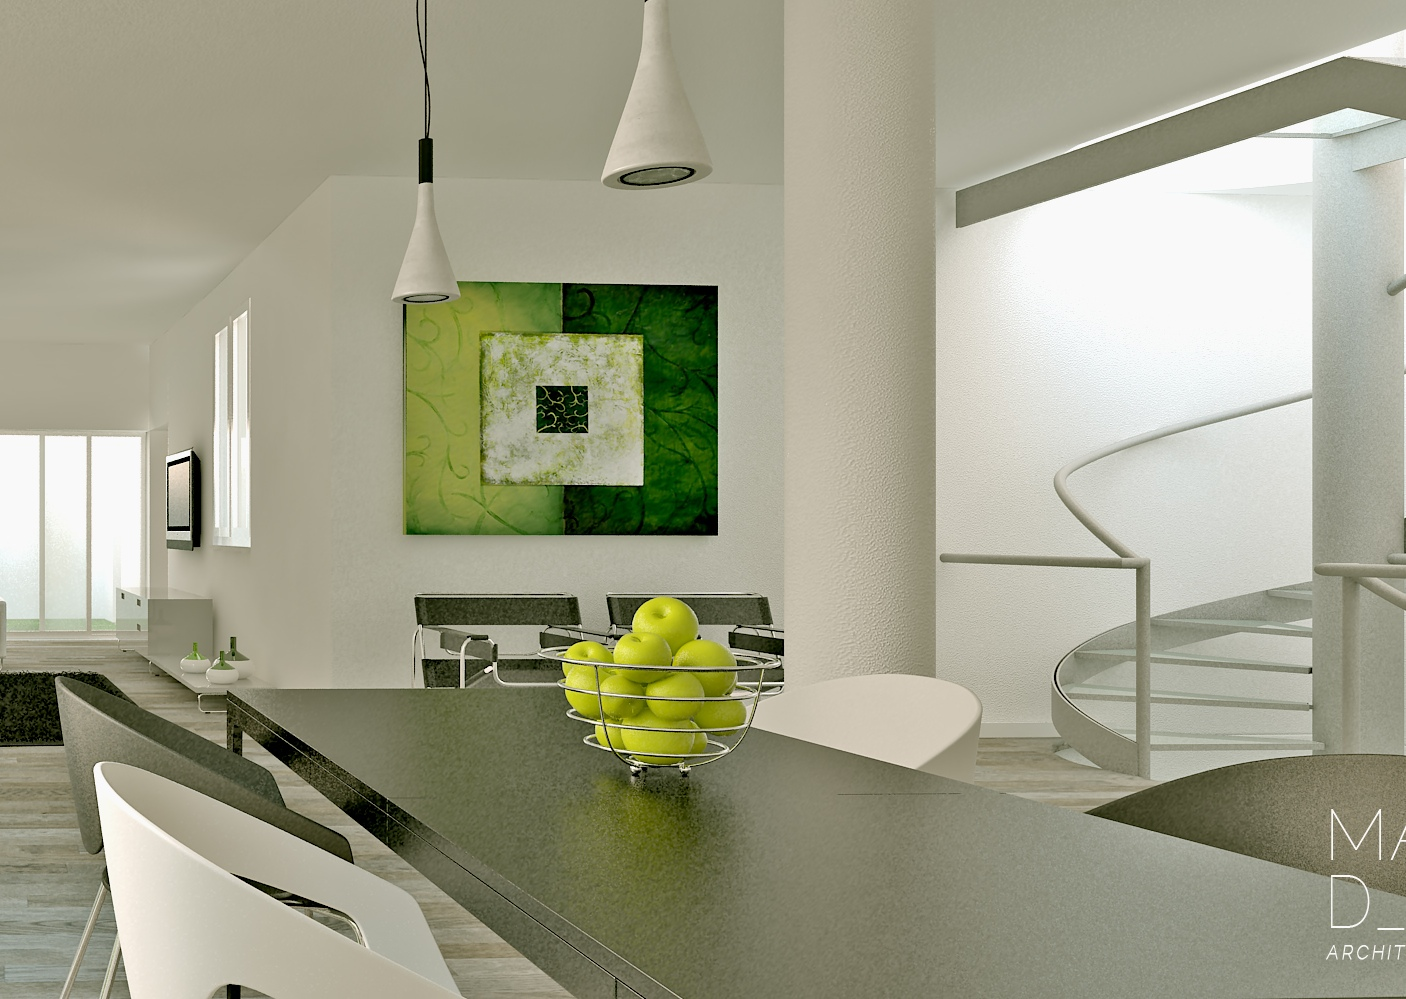 Green white gray dining room interior design ideas White grey interior design